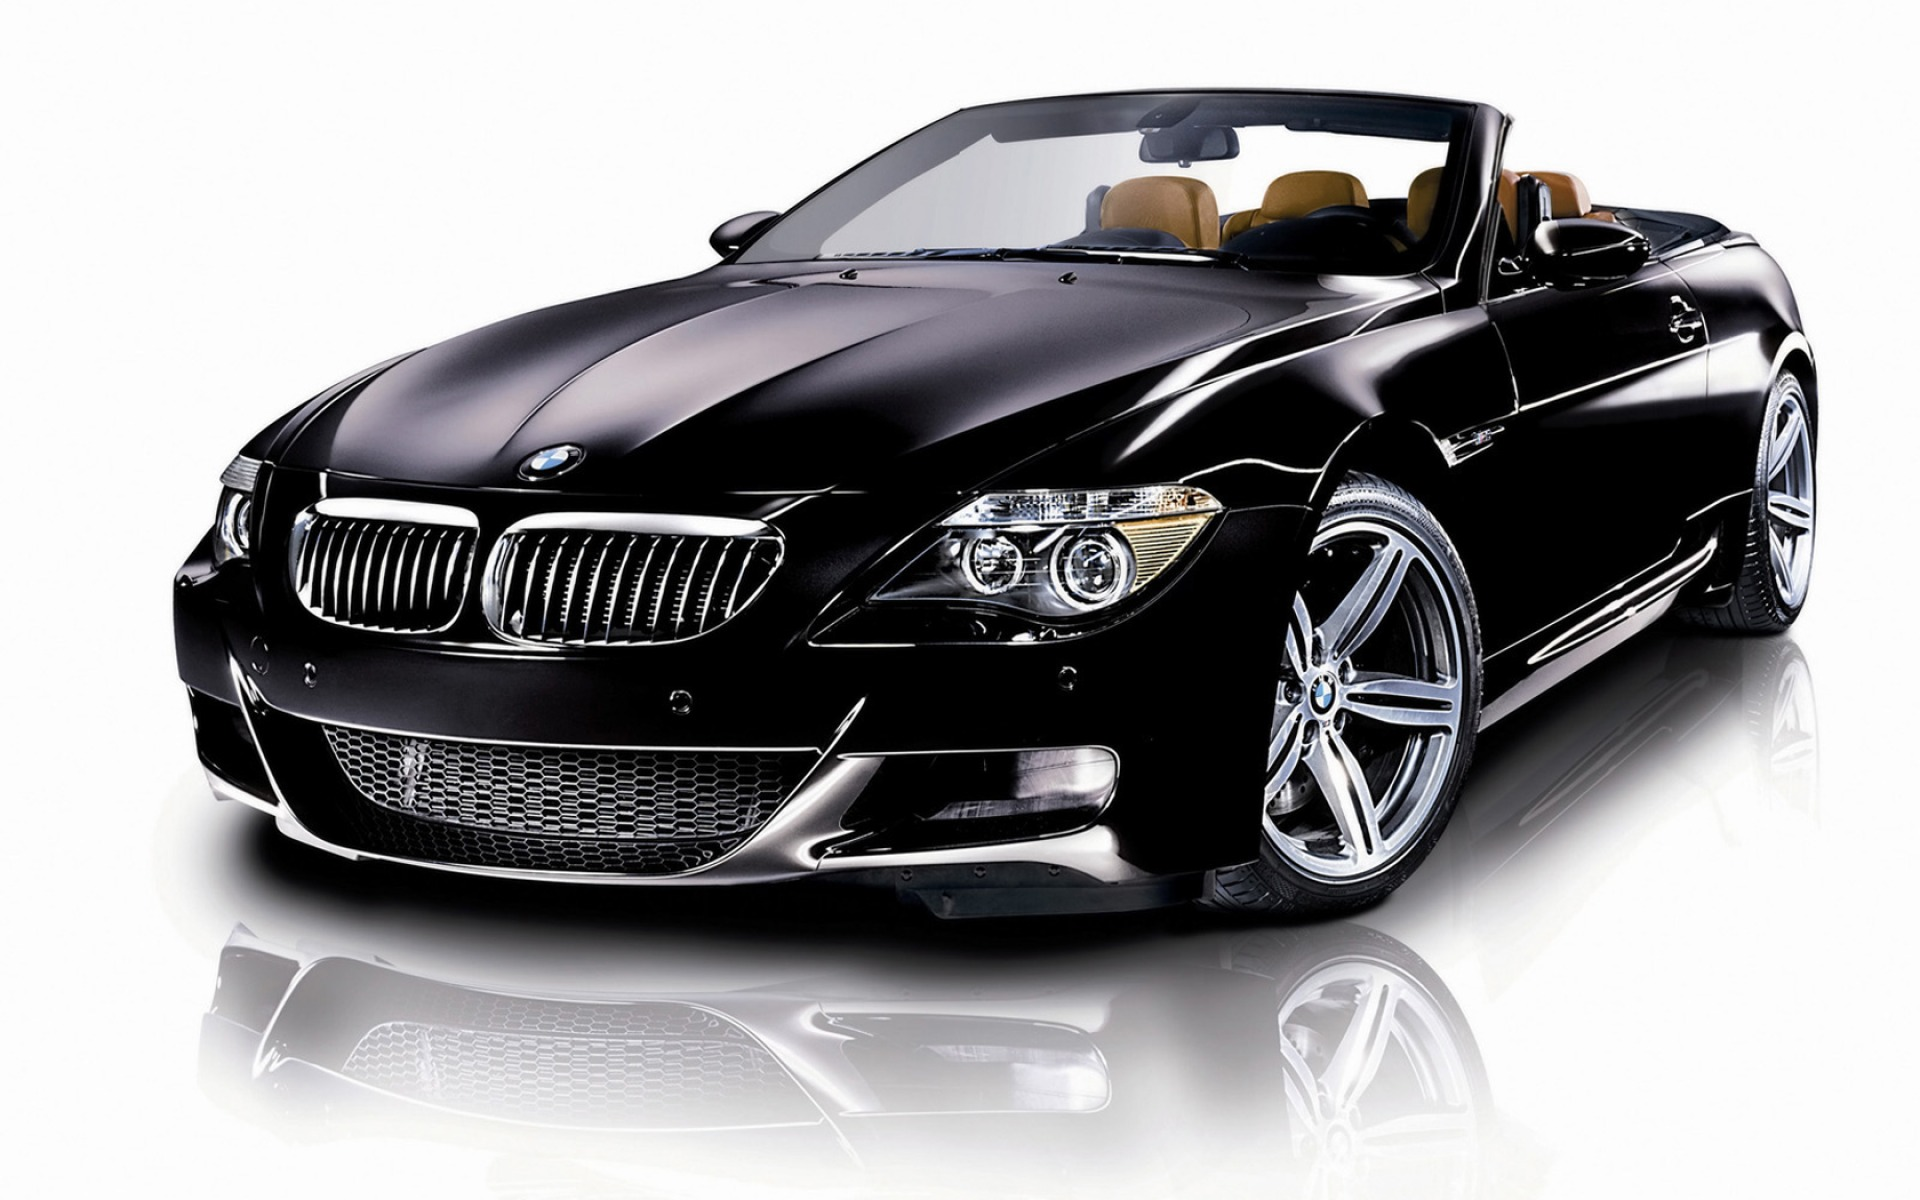 Ultrablogus  Marvelous Bmw Car Wallpaper Wallpapers For Free Download About   With Extraordinary Bmw M Convertible Wallpaper Bmw Cars With Alluring Donald Trump  Interior Also B  Interior Photos In Addition Mahindra Scorpio Interior Images And Super Interior As Well As T  Interior Additionally Space Shuttle Interior Pictures From Allfreedownloadcom With Ultrablogus  Extraordinary Bmw Car Wallpaper Wallpapers For Free Download About   With Alluring Bmw M Convertible Wallpaper Bmw Cars And Marvelous Donald Trump  Interior Also B  Interior Photos In Addition Mahindra Scorpio Interior Images From Allfreedownloadcom